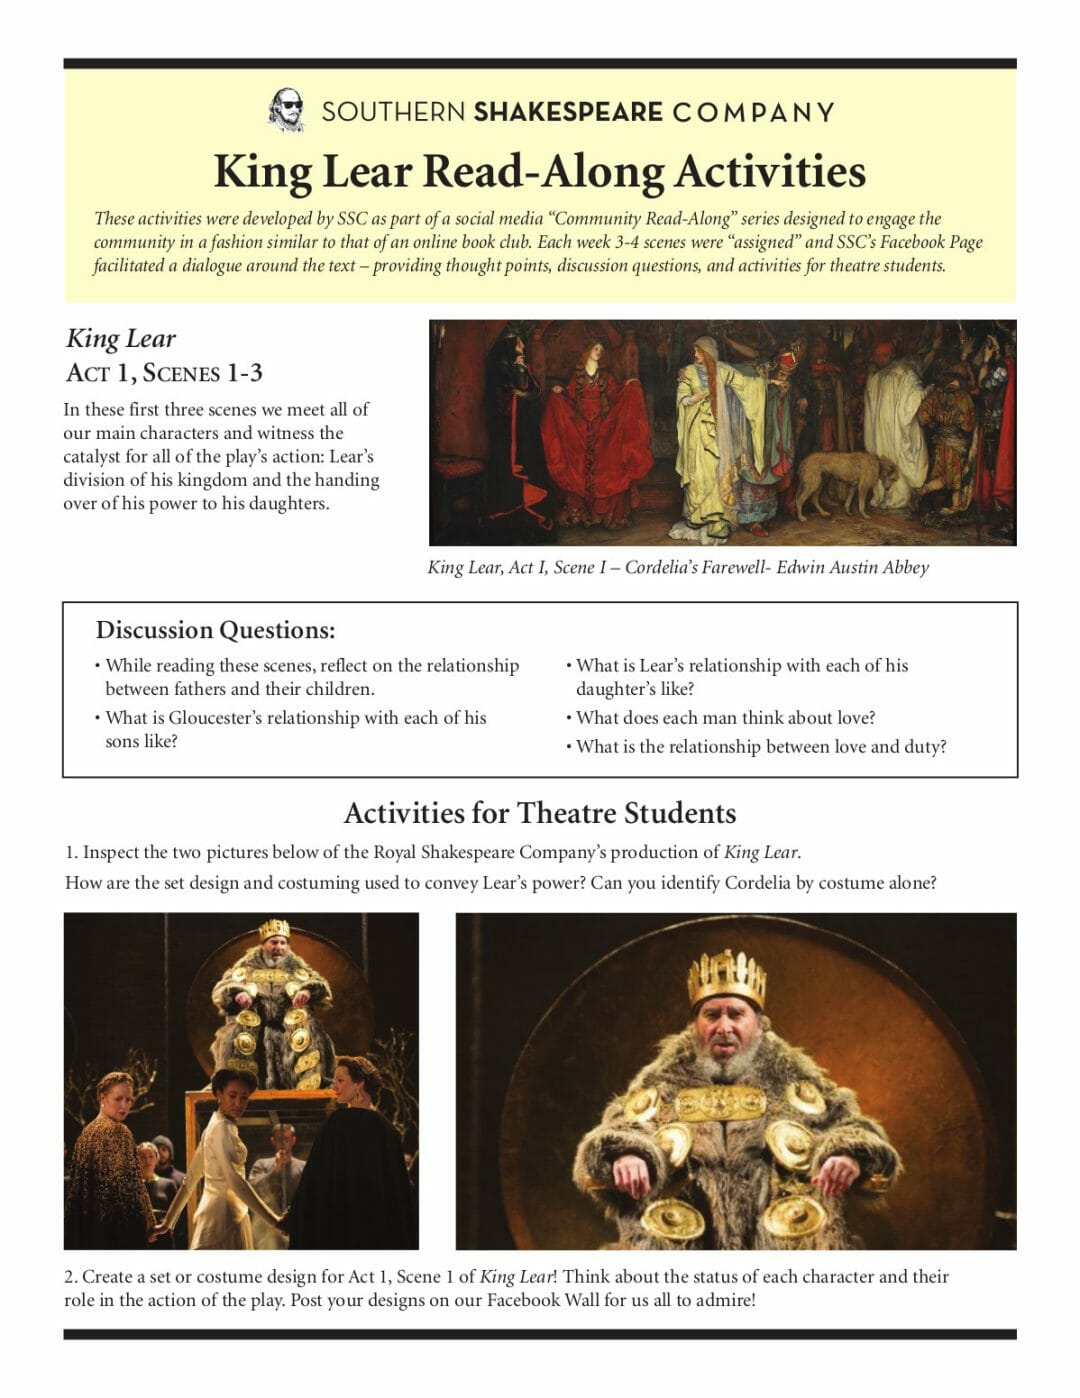 King Lear Read Along Resources pt.1